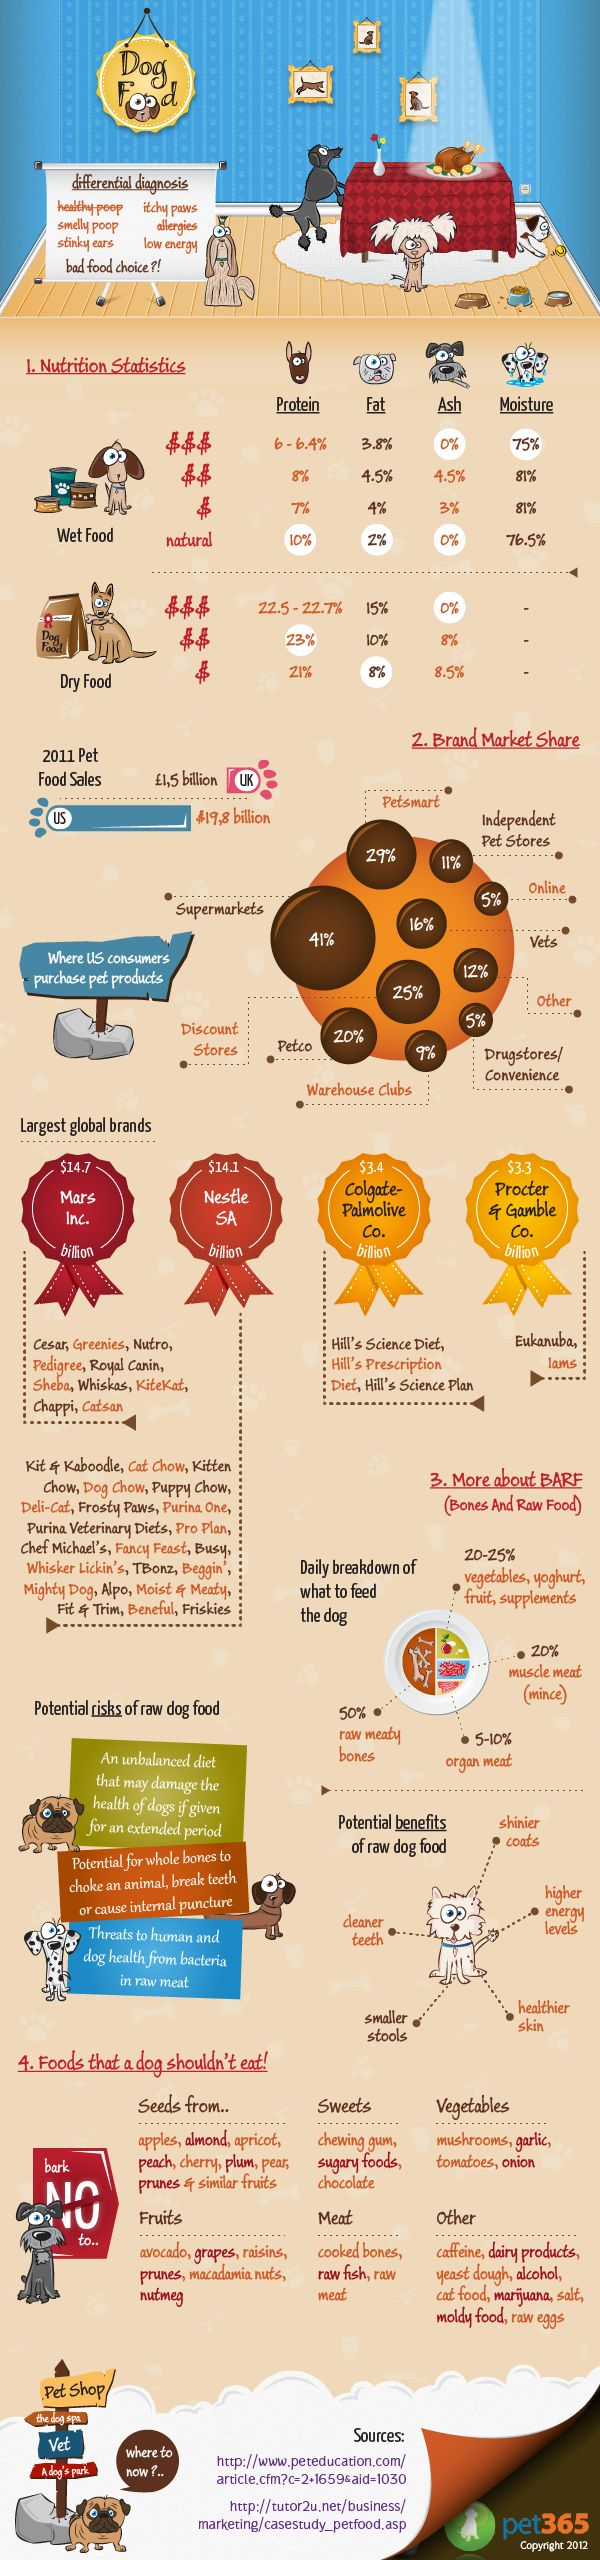 A World of Dog Food   Gives facts and figures on the multi billion dollar dog food industry. Includes nutritional info, details on the largest brands, and some tips on food